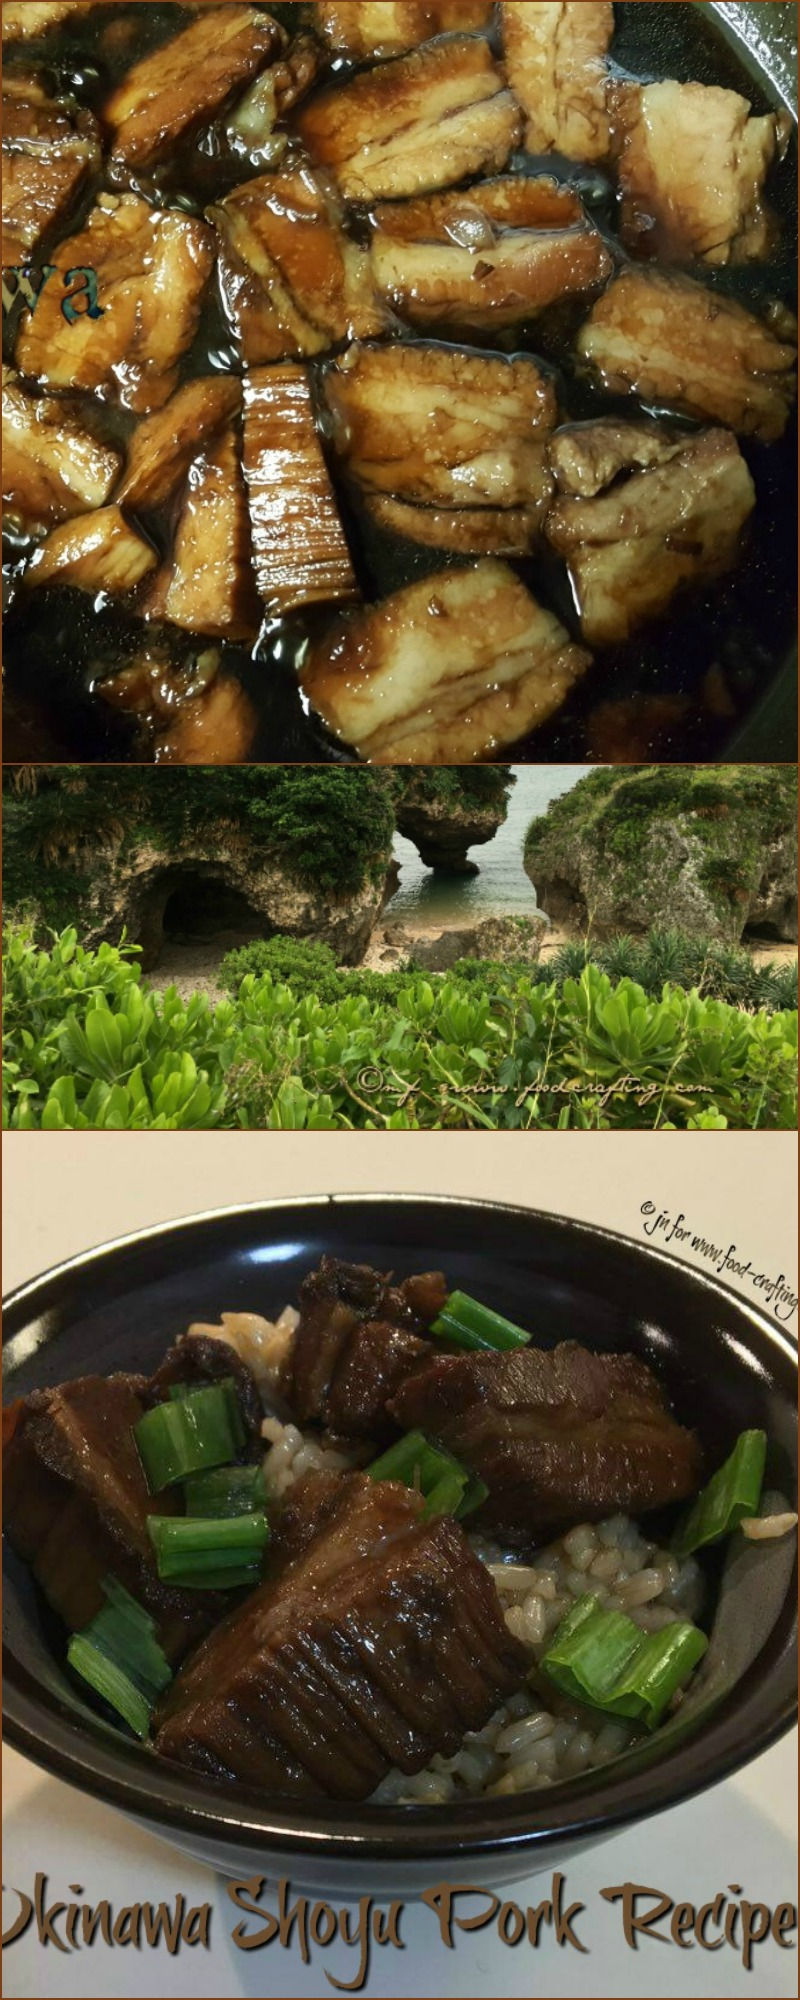 okinawa shoyu pork - Prepare this very #easy #recipe using pork belly. Simmer in a sauce made with shoyu, mirin, sugar, garlic & ginger #brownsugar #japan #mirin